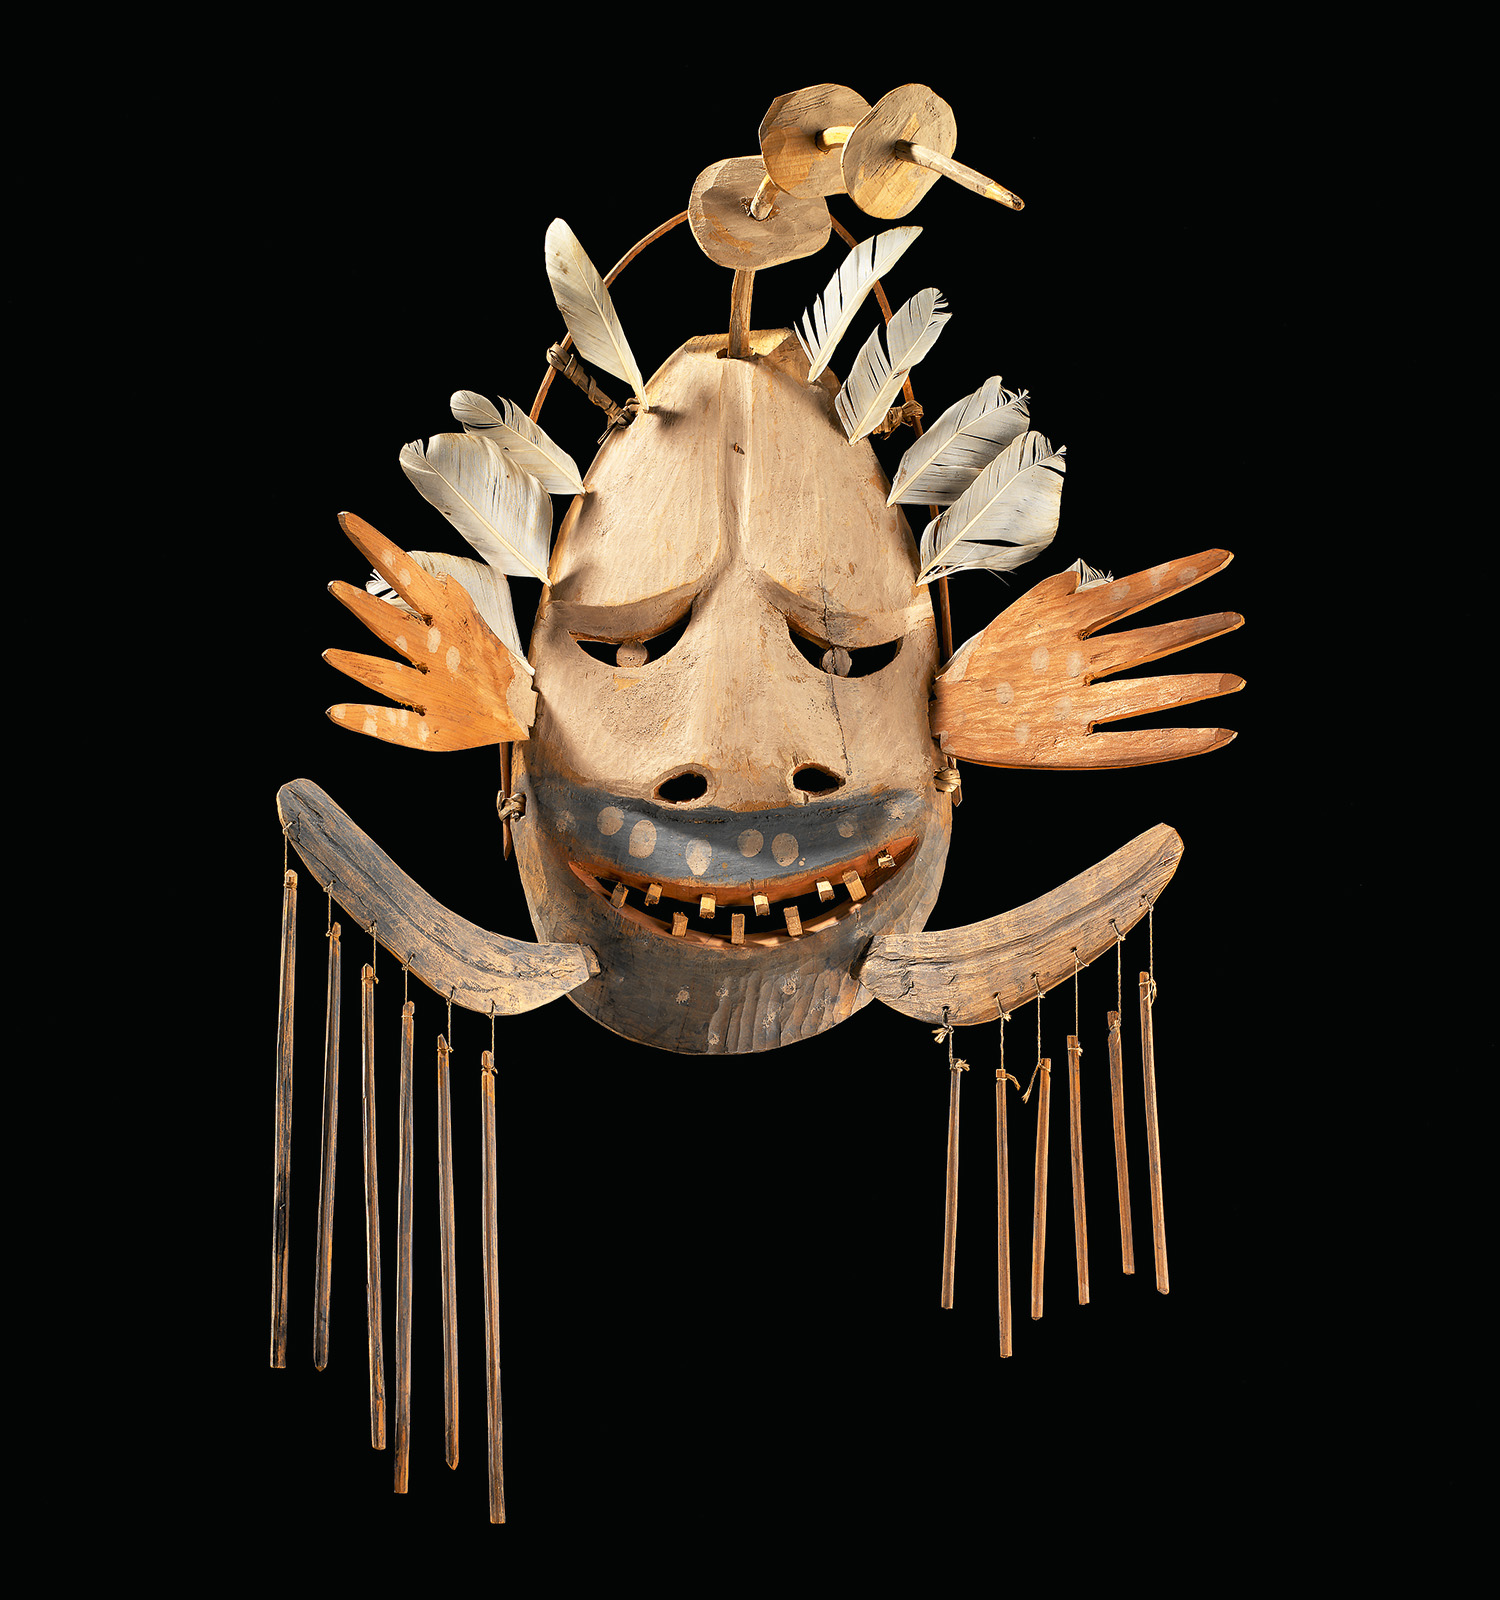 Central Yup'ik, Napaskiaq Village, Kuskokwim River, Alaska. Wanelnguq dance mask c. 1900. Wood, feathers, pigment. Collection of the National Museum of the American Indian, Smithsonian Institution, 9/3432. Photo by NMAI Photo Services.